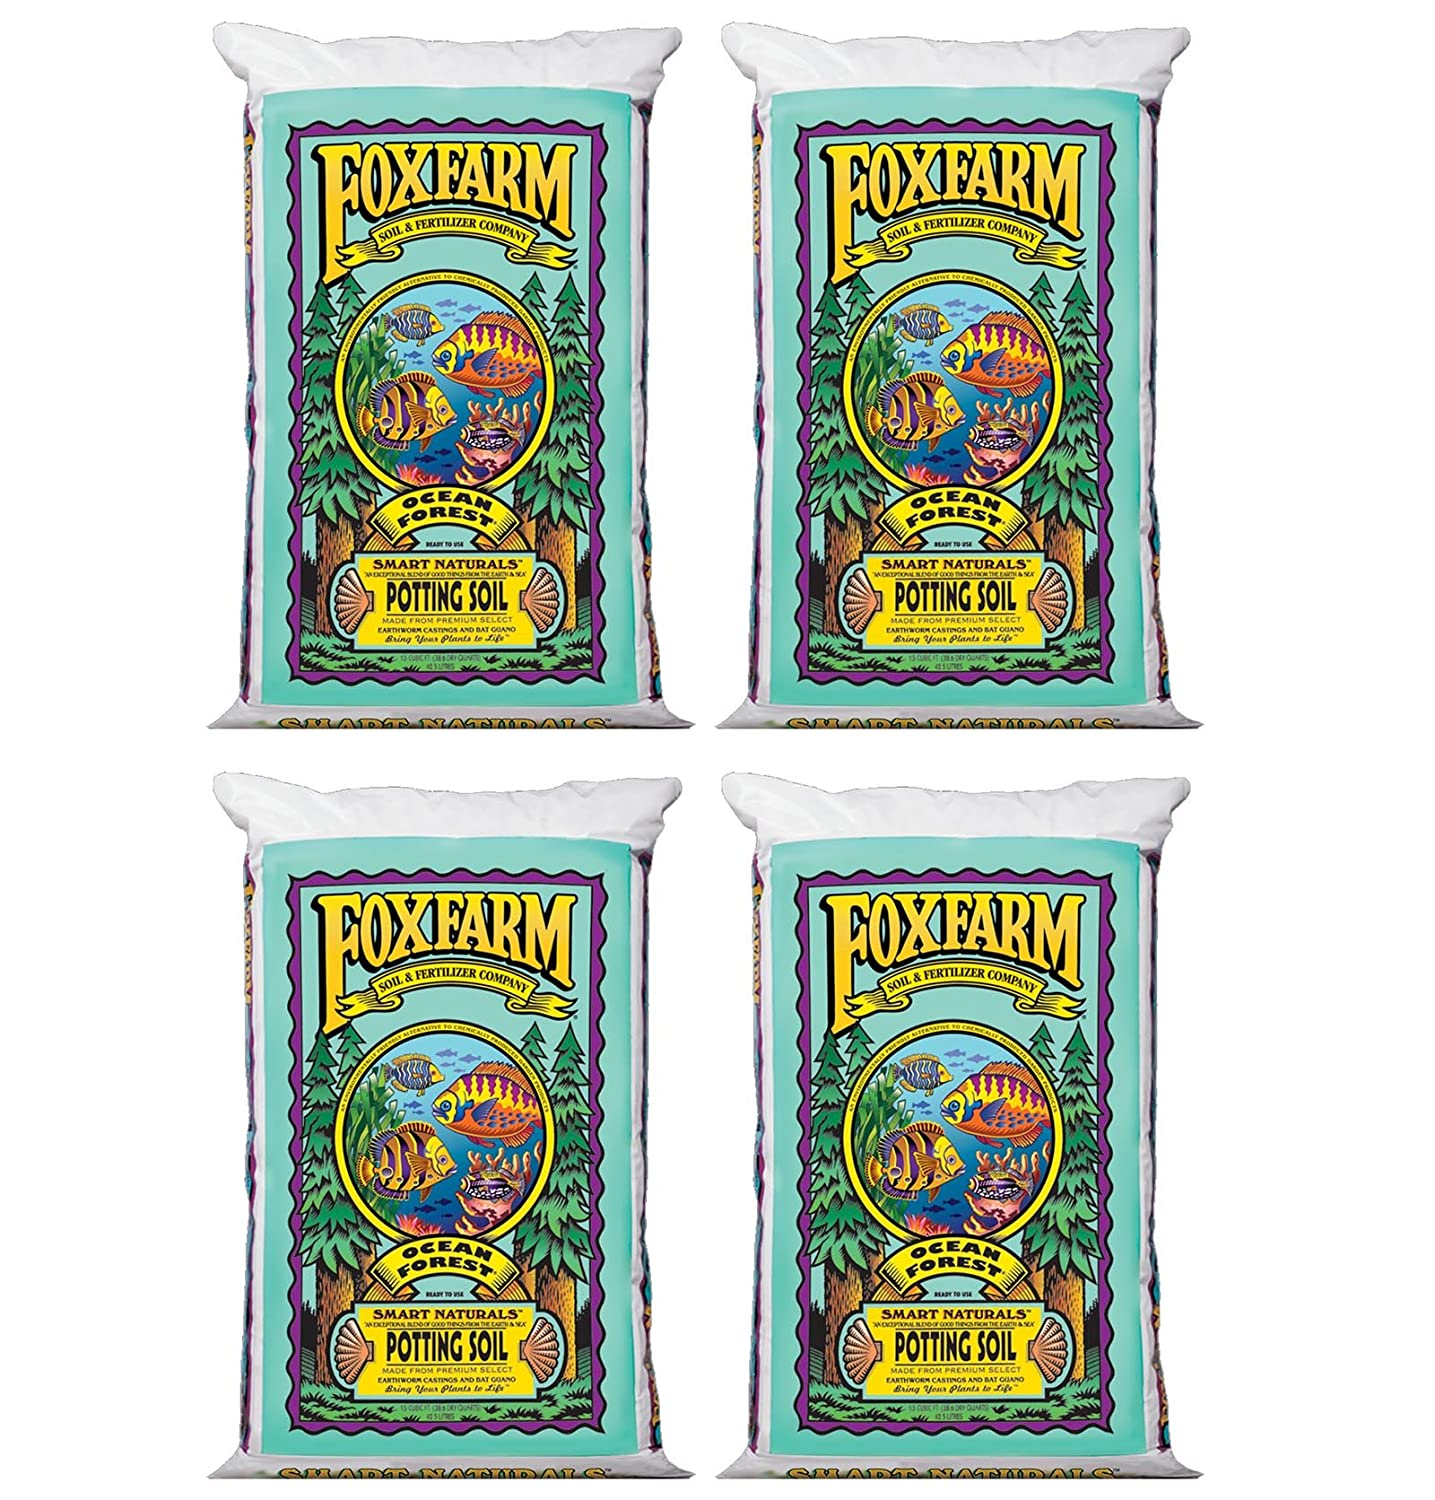 (4) FoxFarm FX14000 Ocean Forest Organic Potting Soil Bags 6.3-6.8 pH | 6 Cu Ft